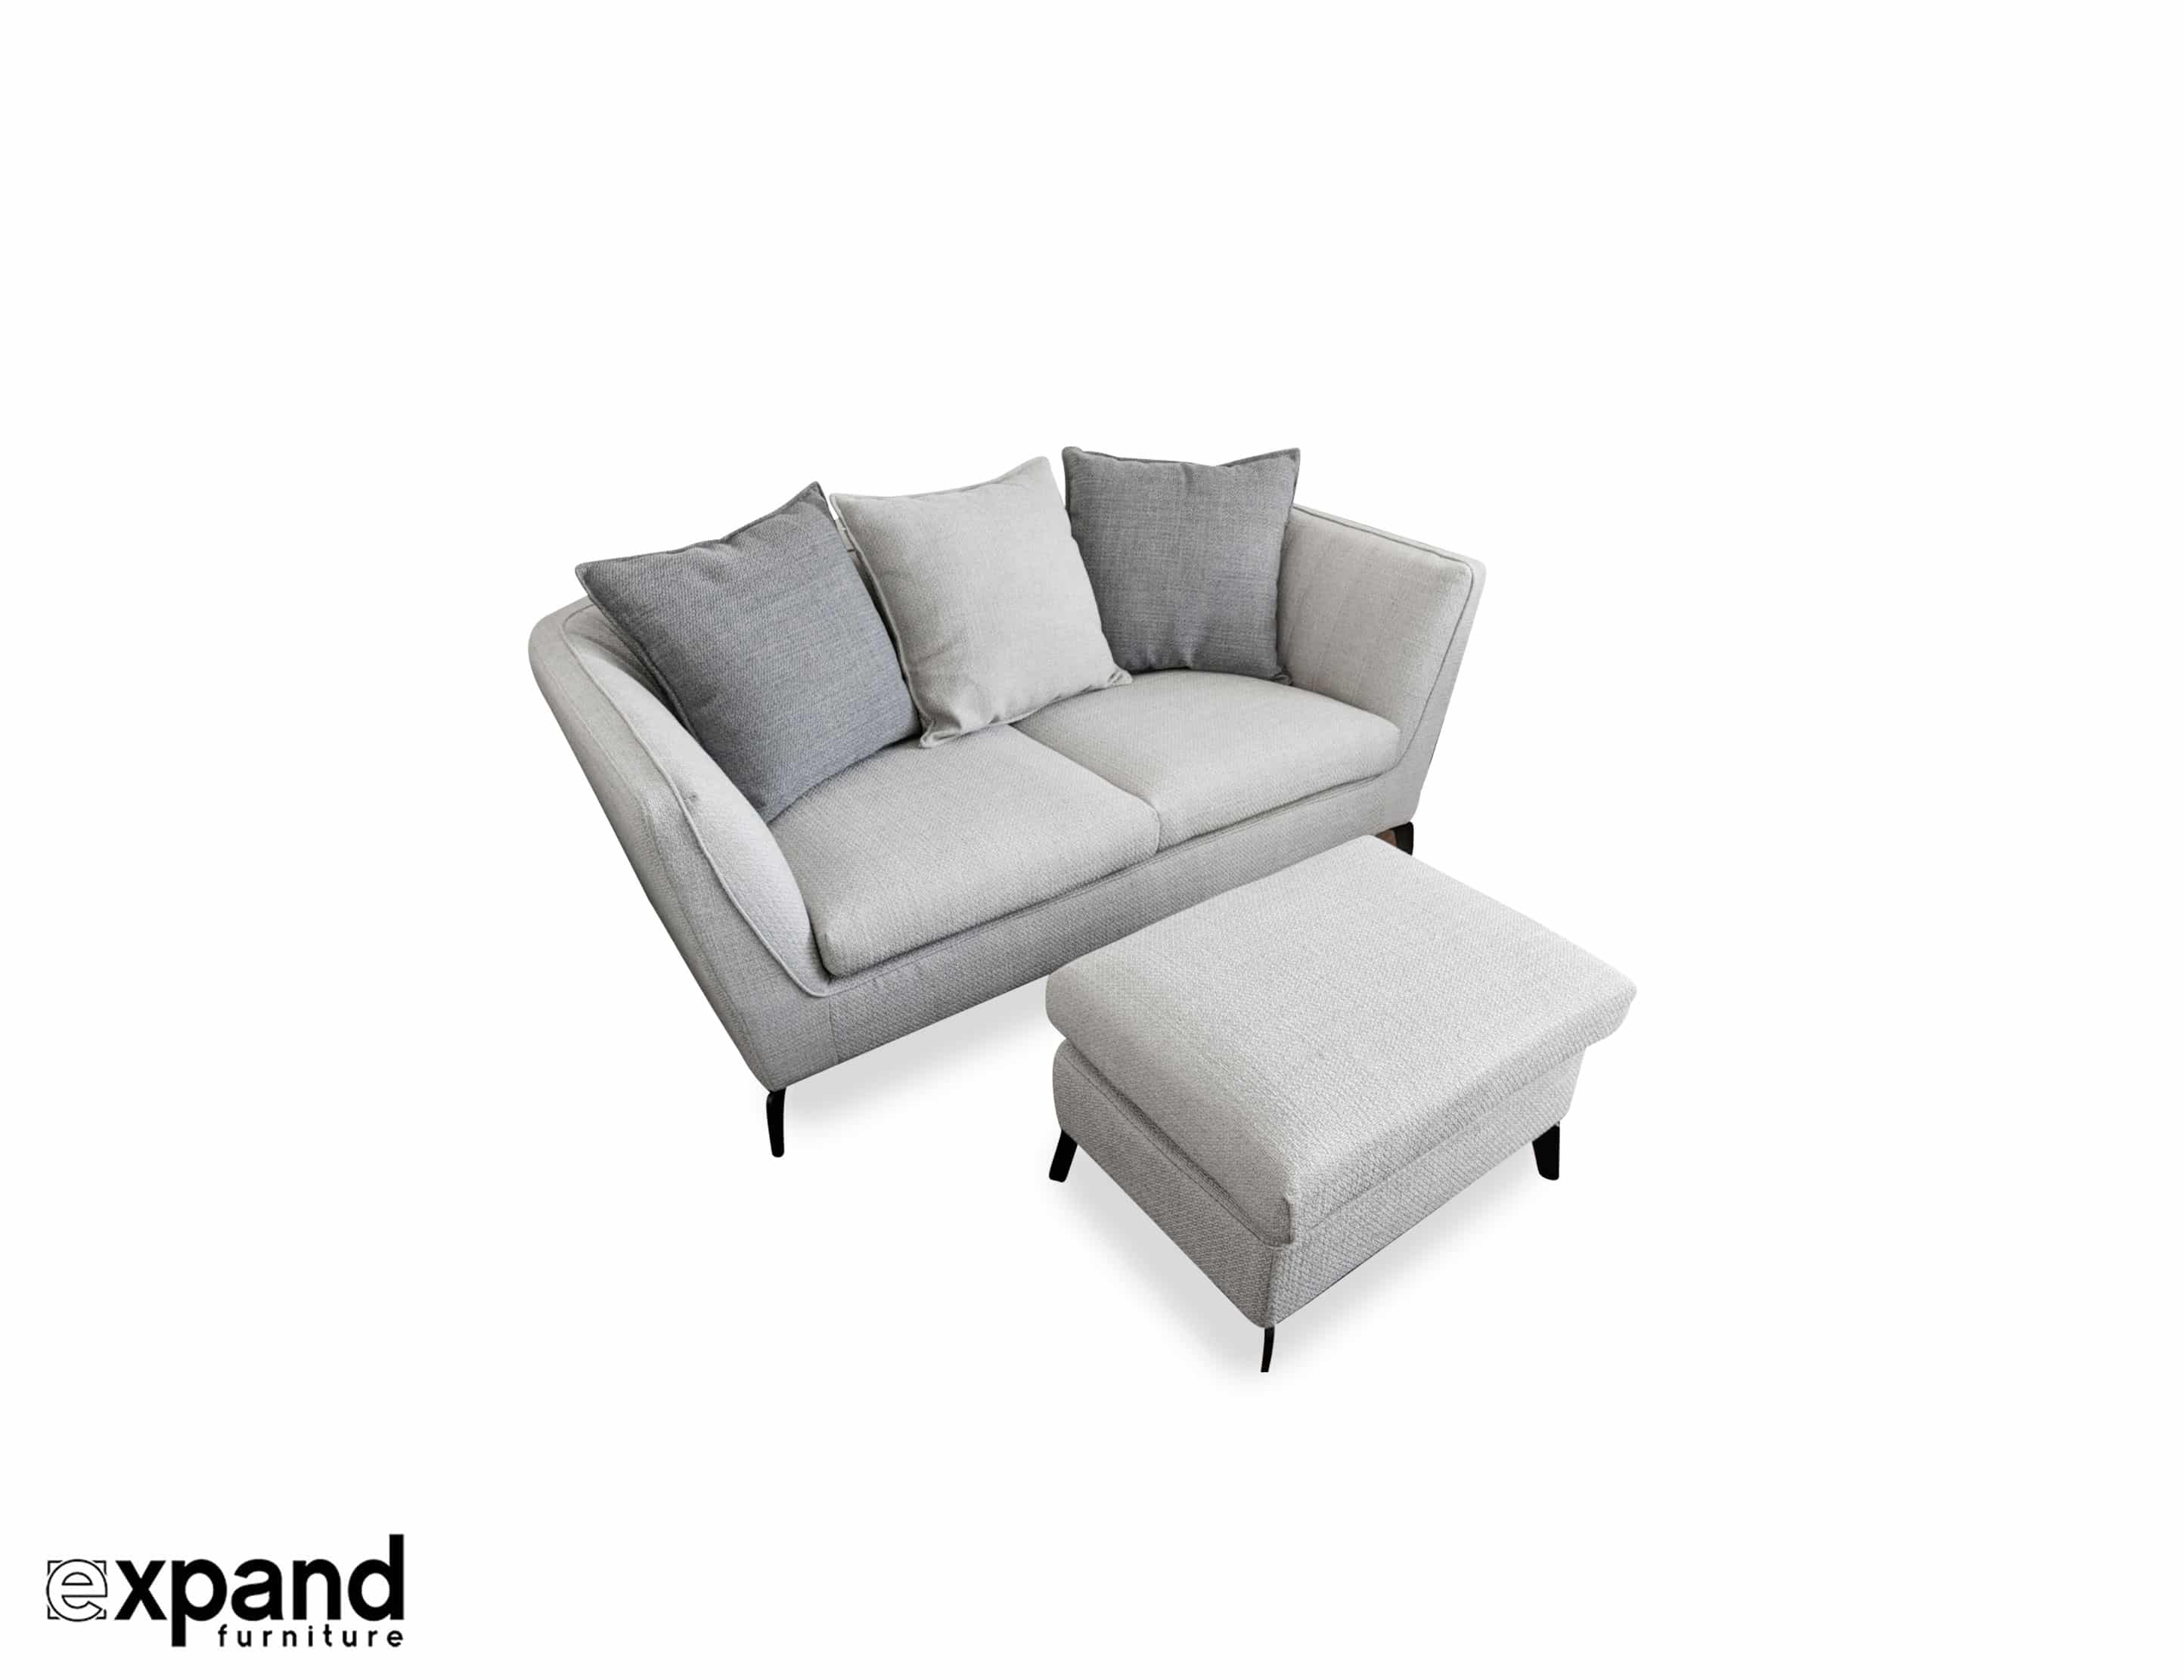 Skyline Small Apartment Sofa With Ottoman